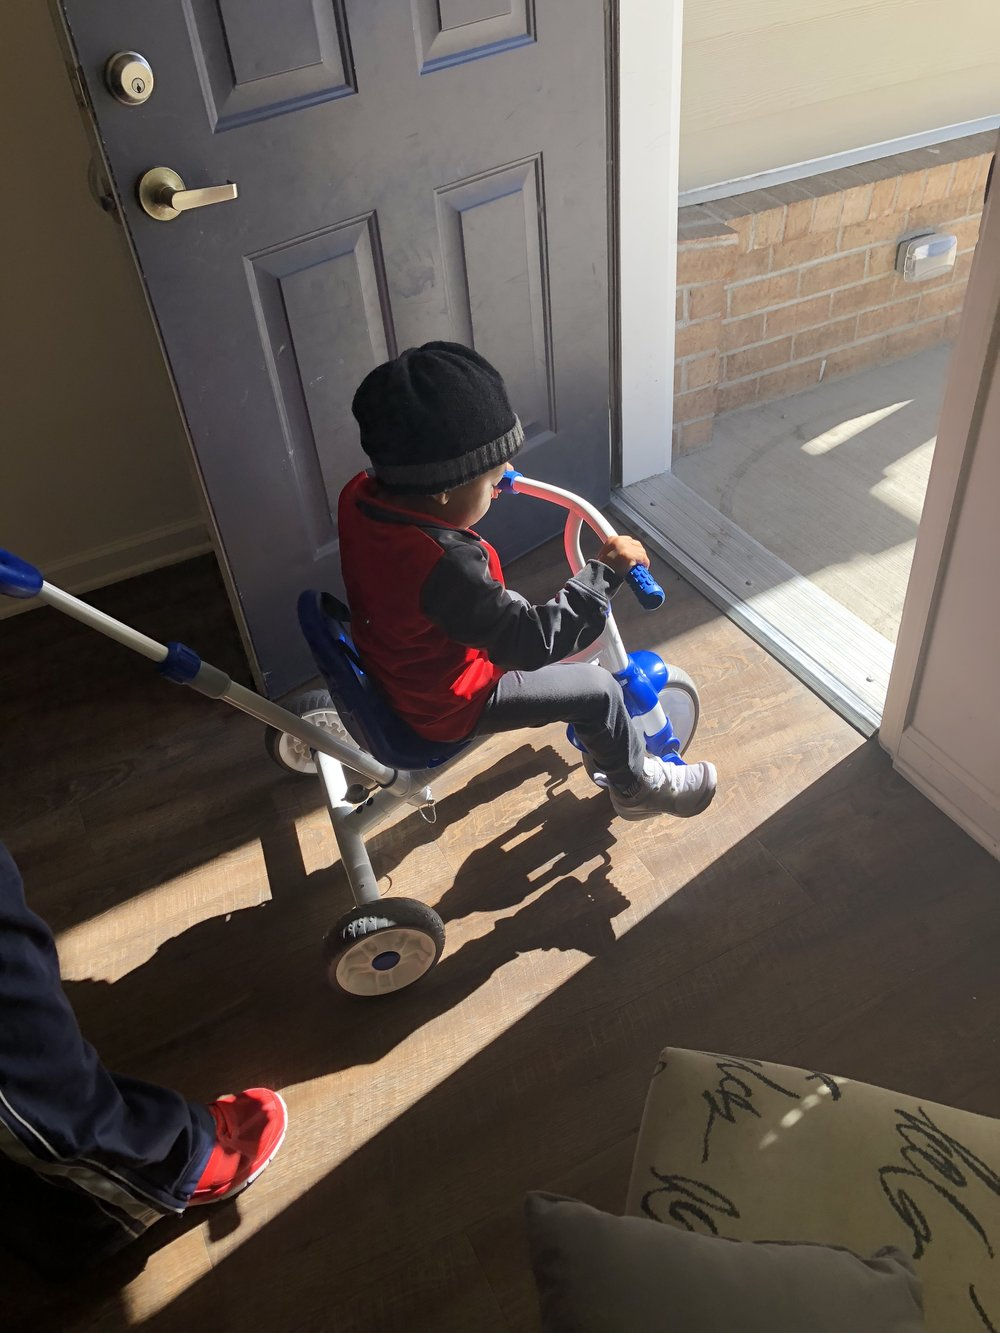 Time for an afternoon cruise on his new tricycle.